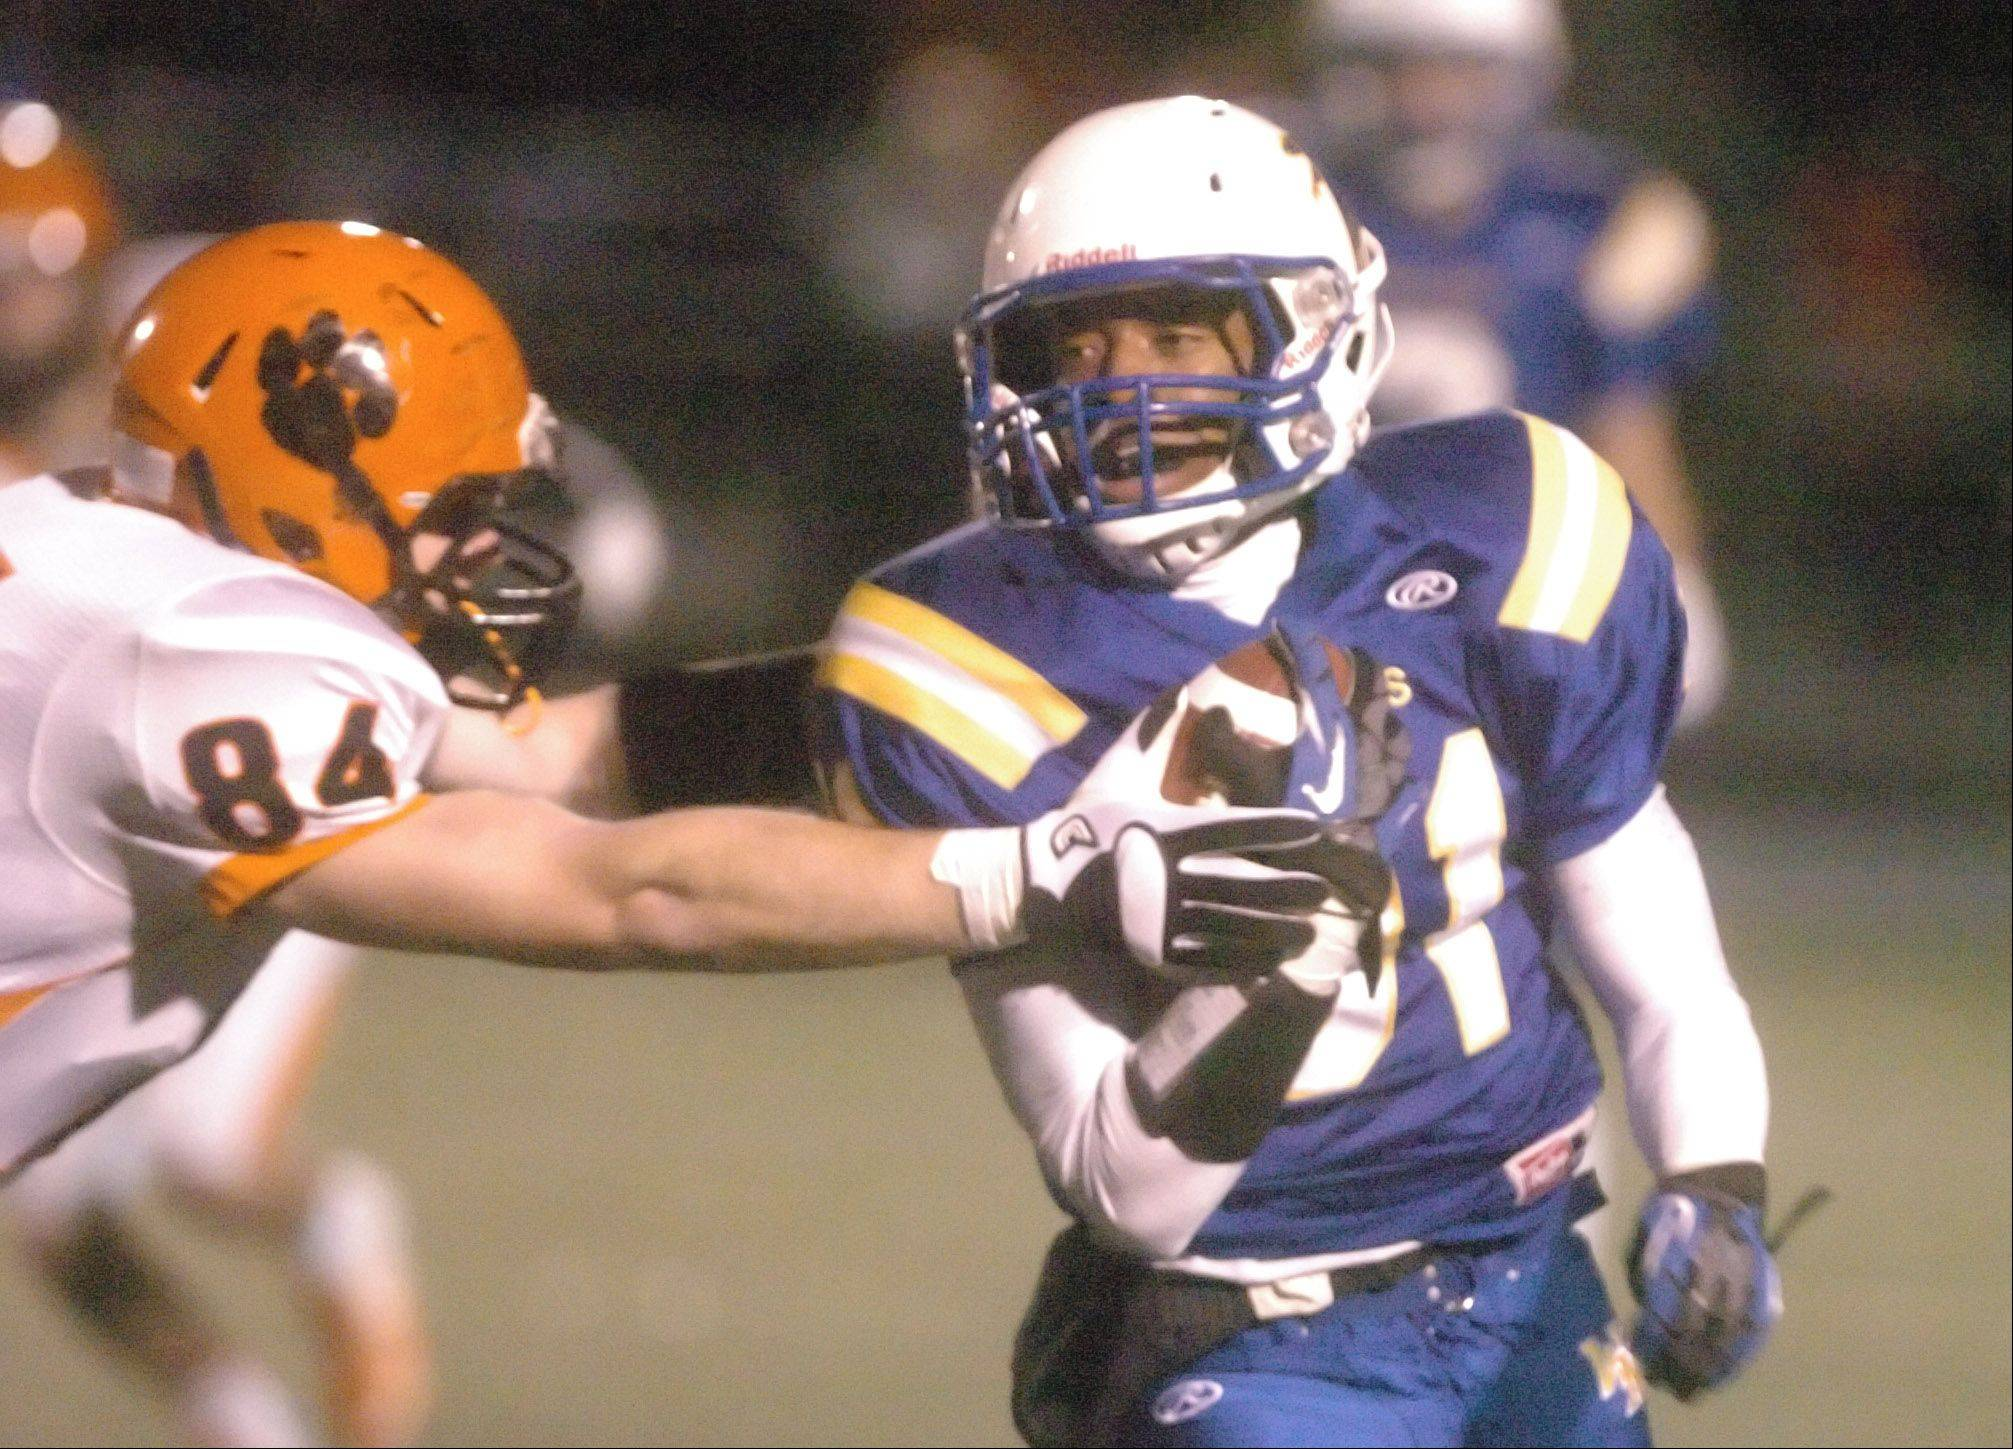 Brian Welch of Wheaton Warrenville South tries to stop Jaylen Howze of Wheaton North.